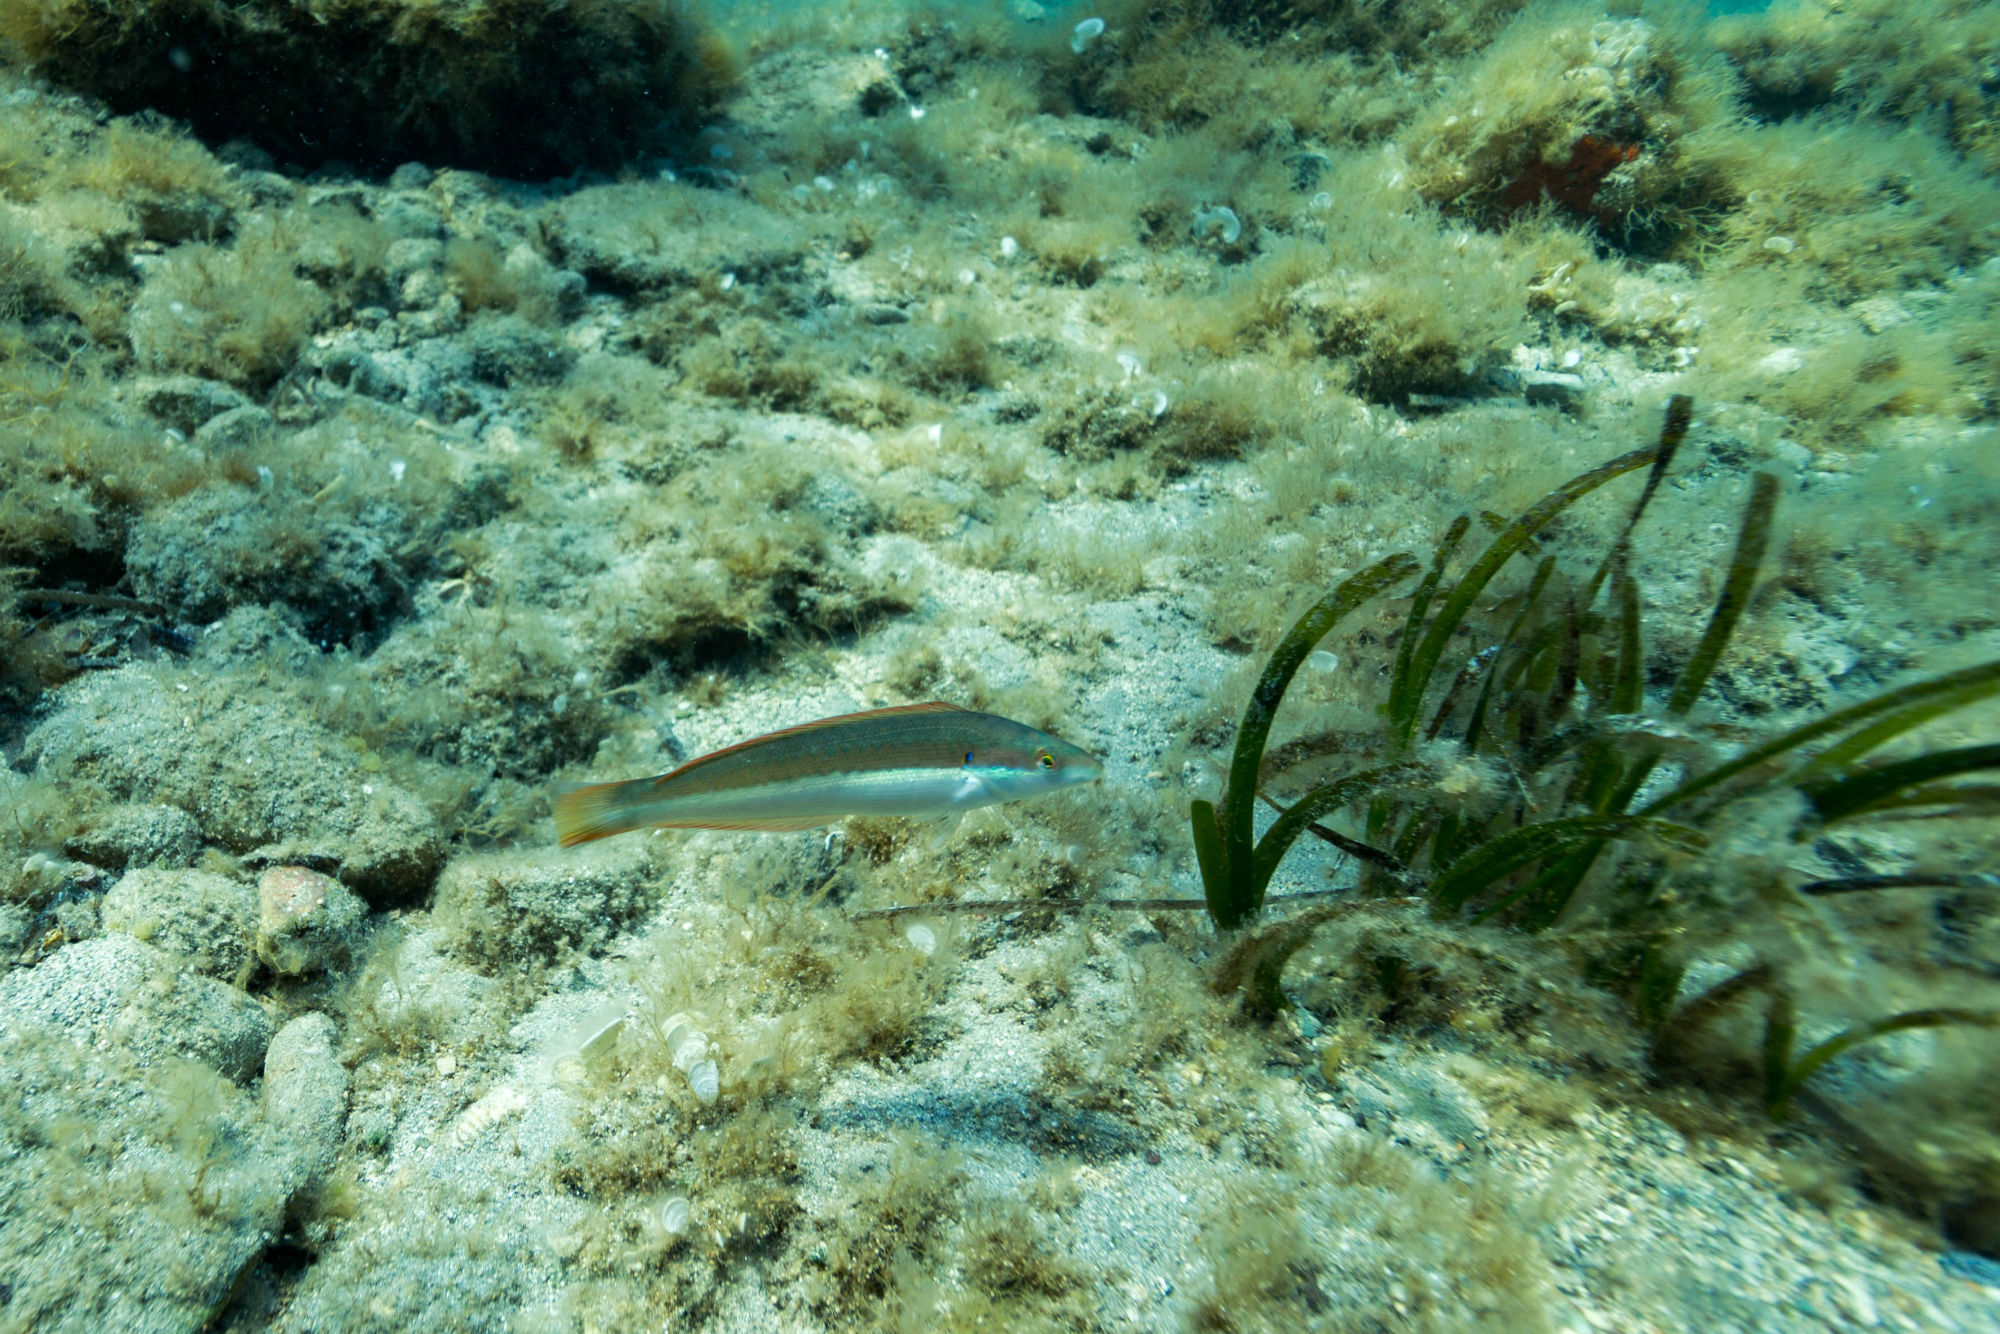 Wrasse And Some Seagrass